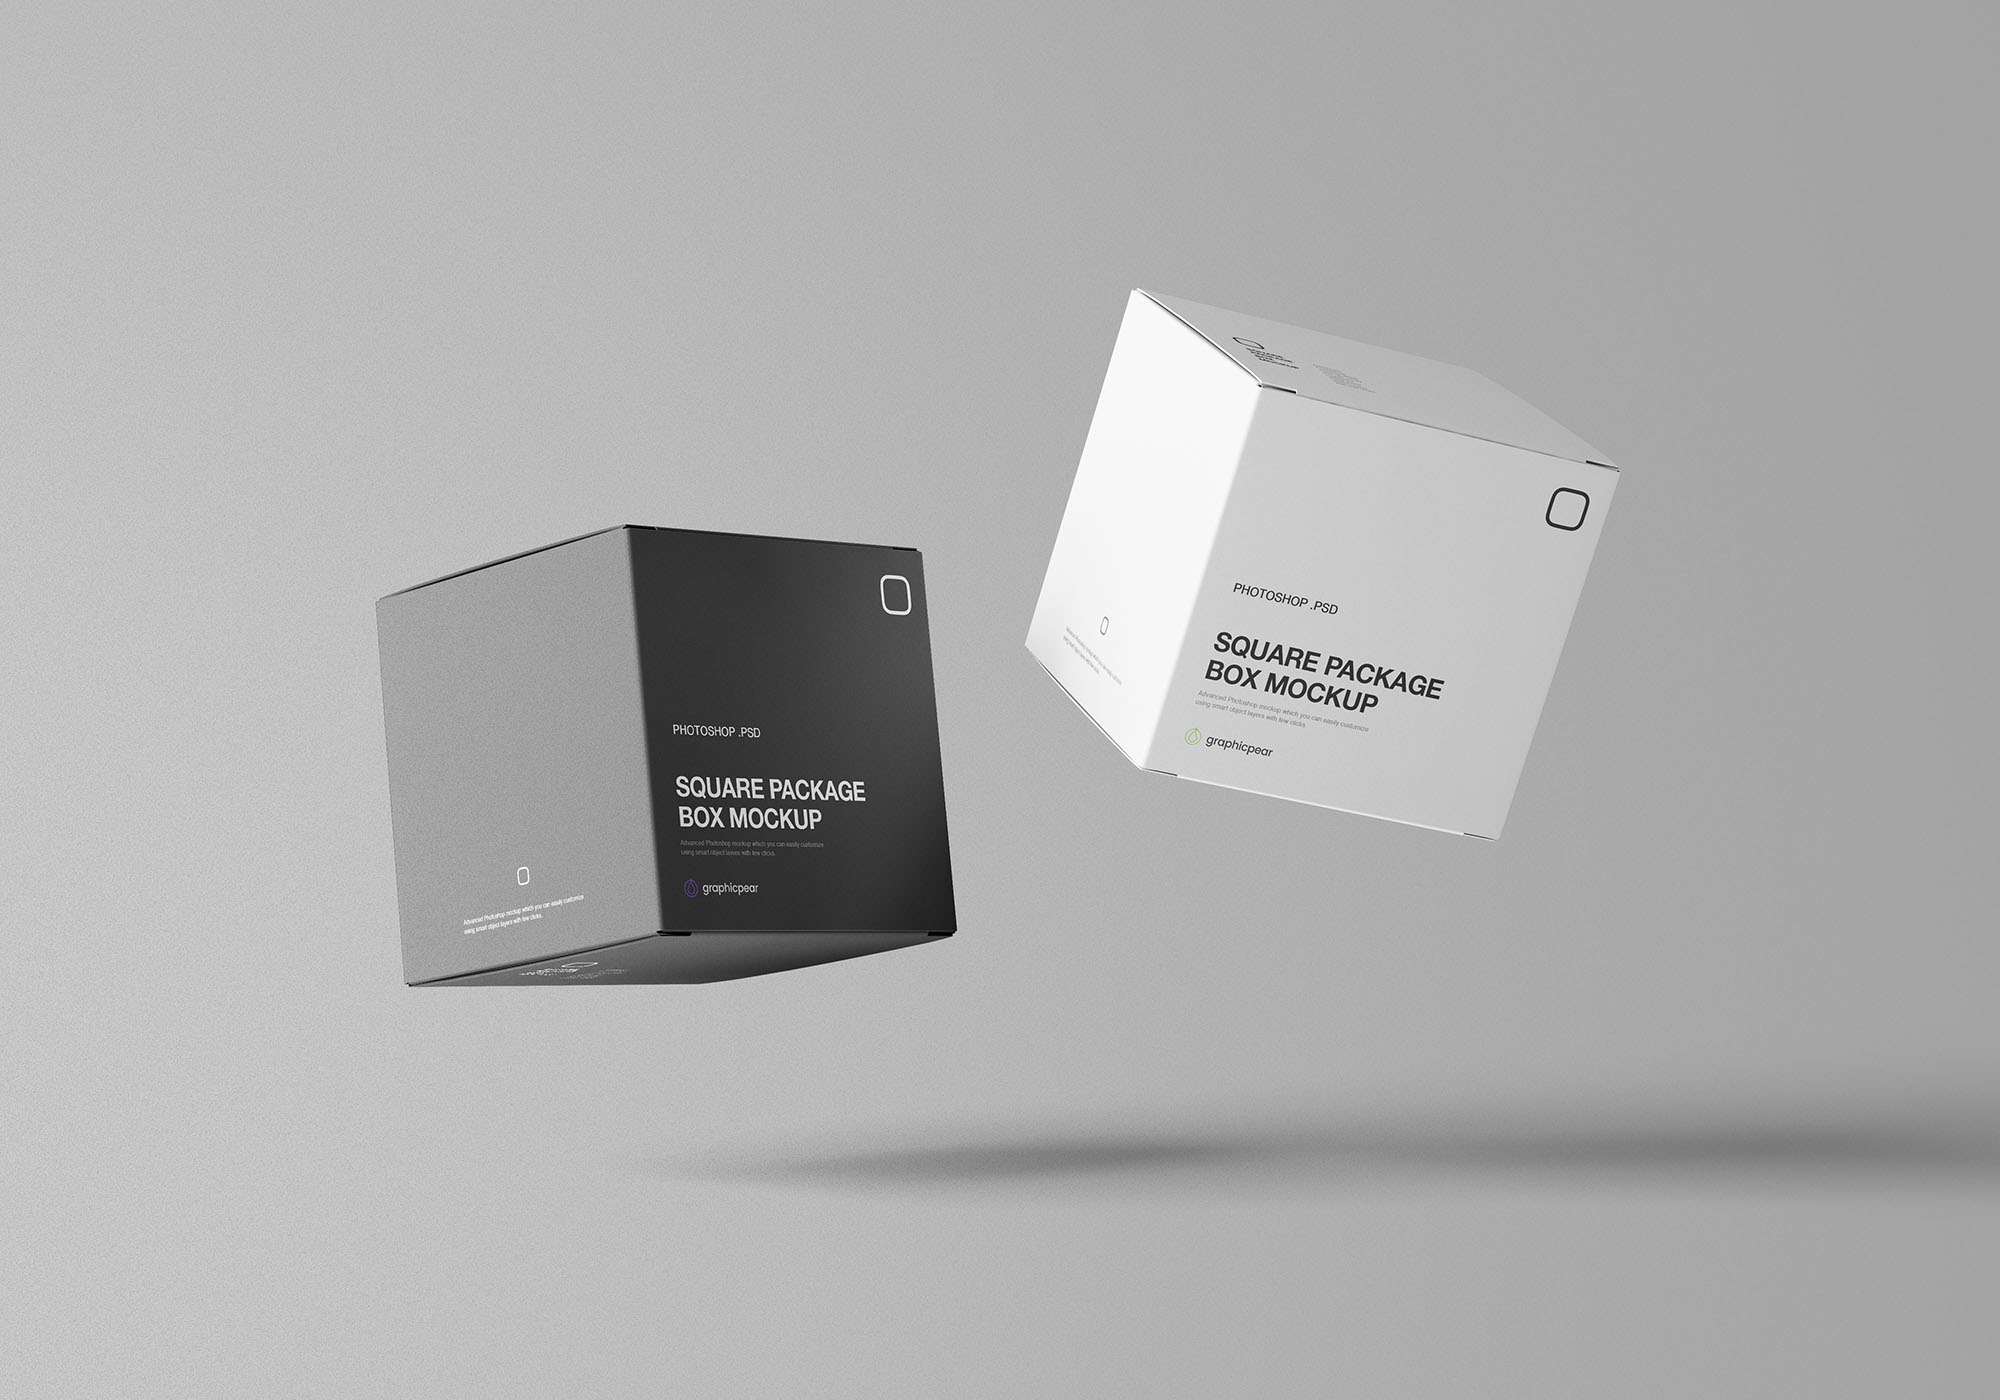 Square Package Box Mockup 7